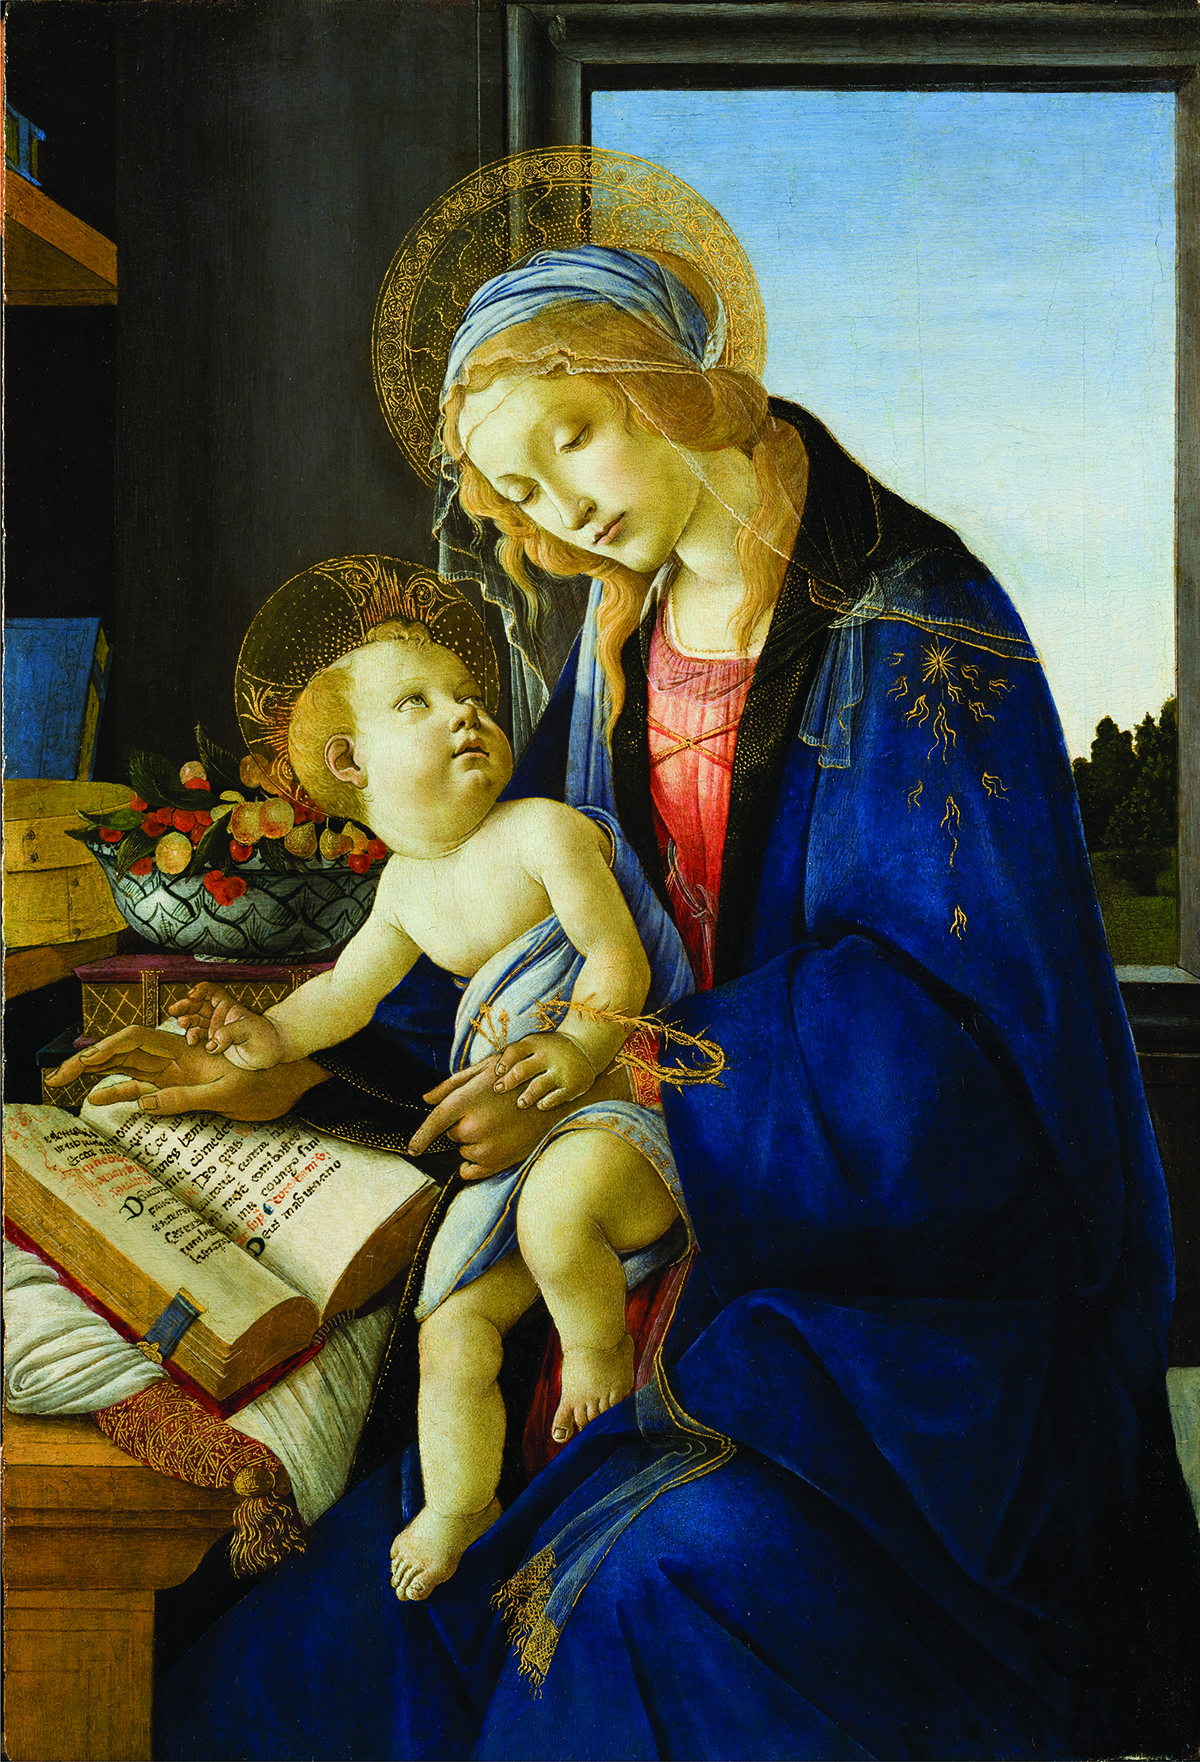 Delicate portrait of Mary and baby Jesus in early Renaissance style. The image shows a light-skinned woman with flowing blonde hair, her face surrounded by gossamer veils and an elaborate golden halo, gazing downward.